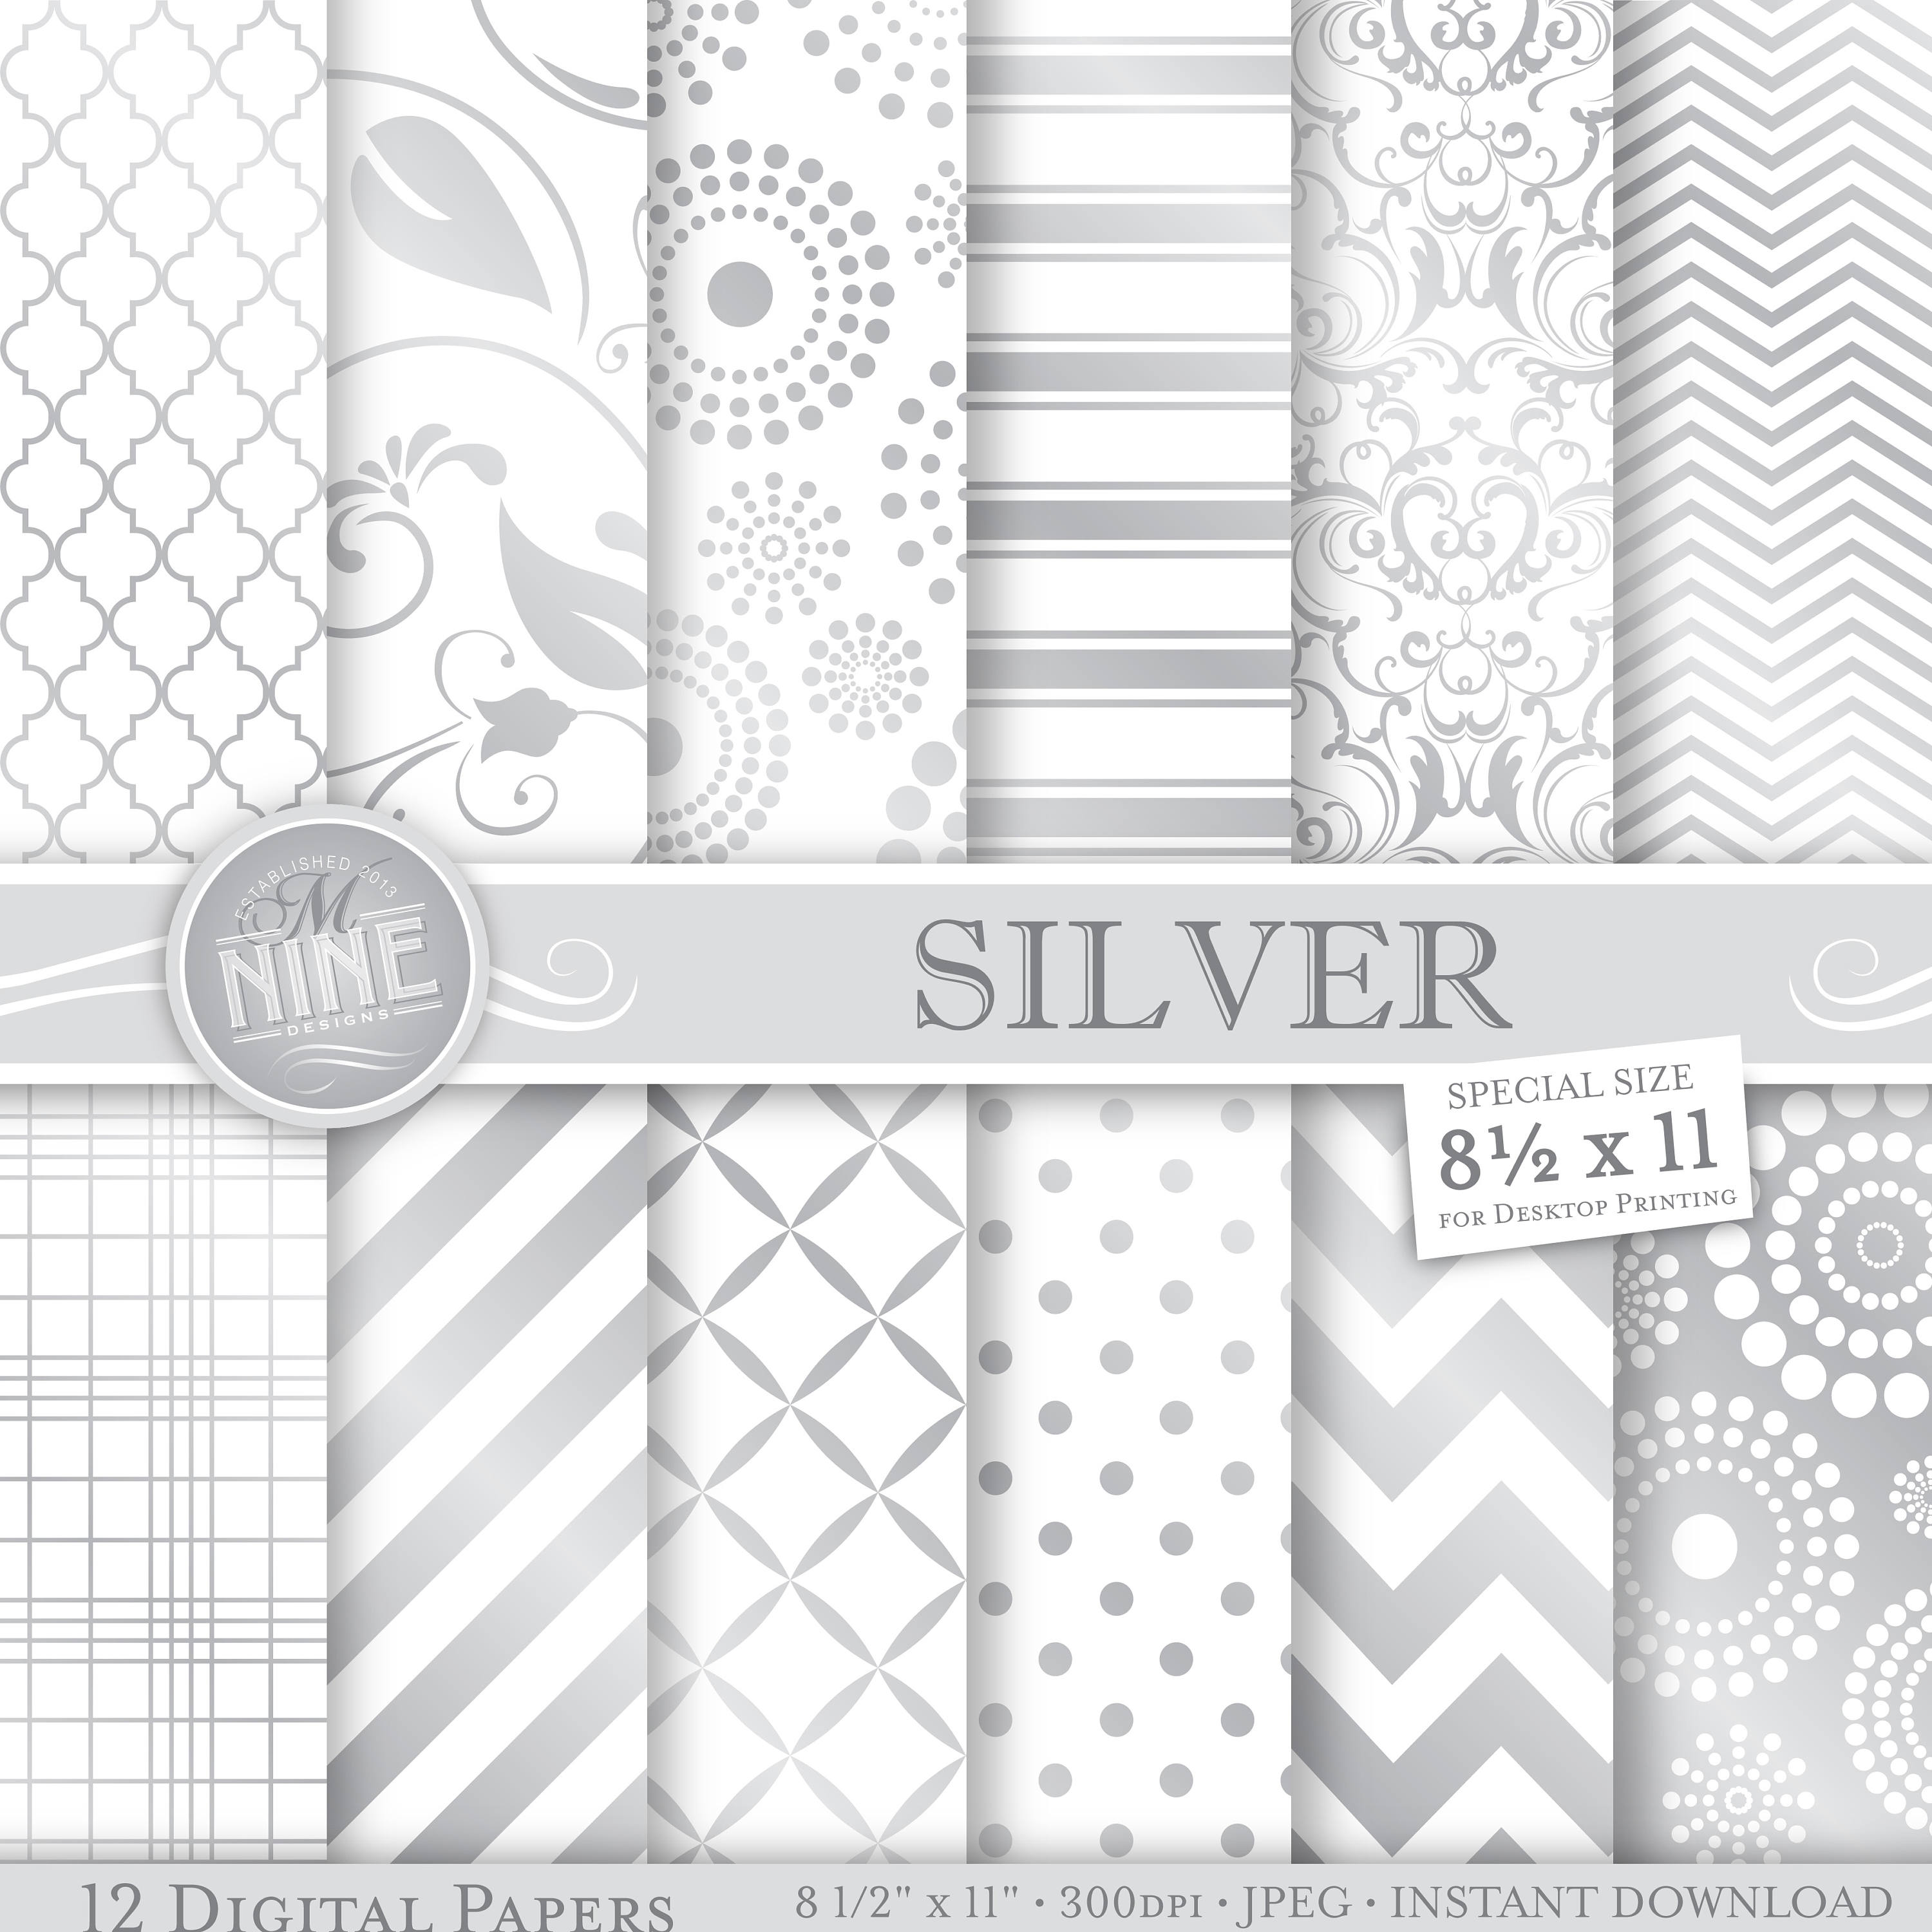 Silver Patterns New Design Inspiration